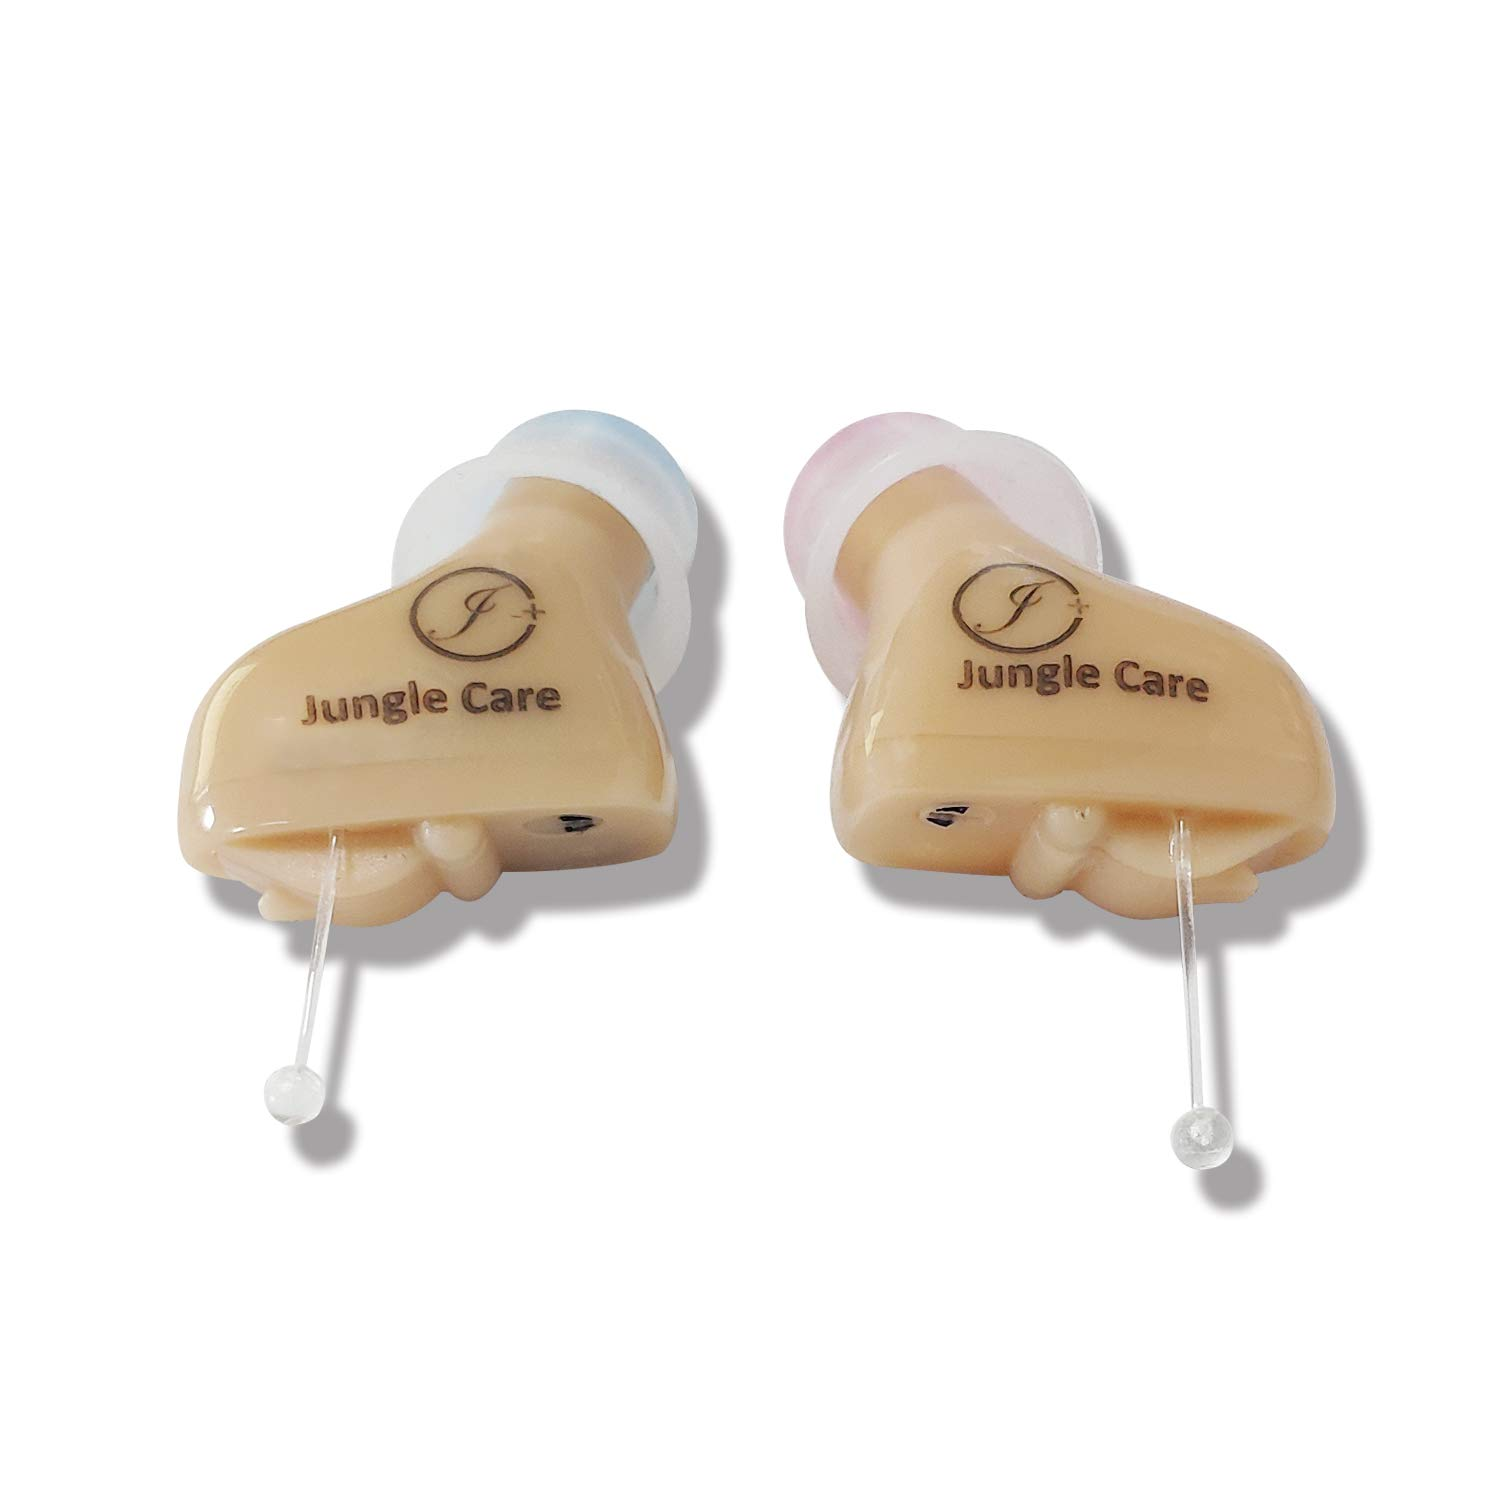 Jungle Care Audiologist Designed Digital CIC Hearing Amplifier PSAP - Completely Invisible in Ear Canal, Noise Reduction, Feedback Cancellation, Personal Sound Amplifier (Pair - Both Ears)